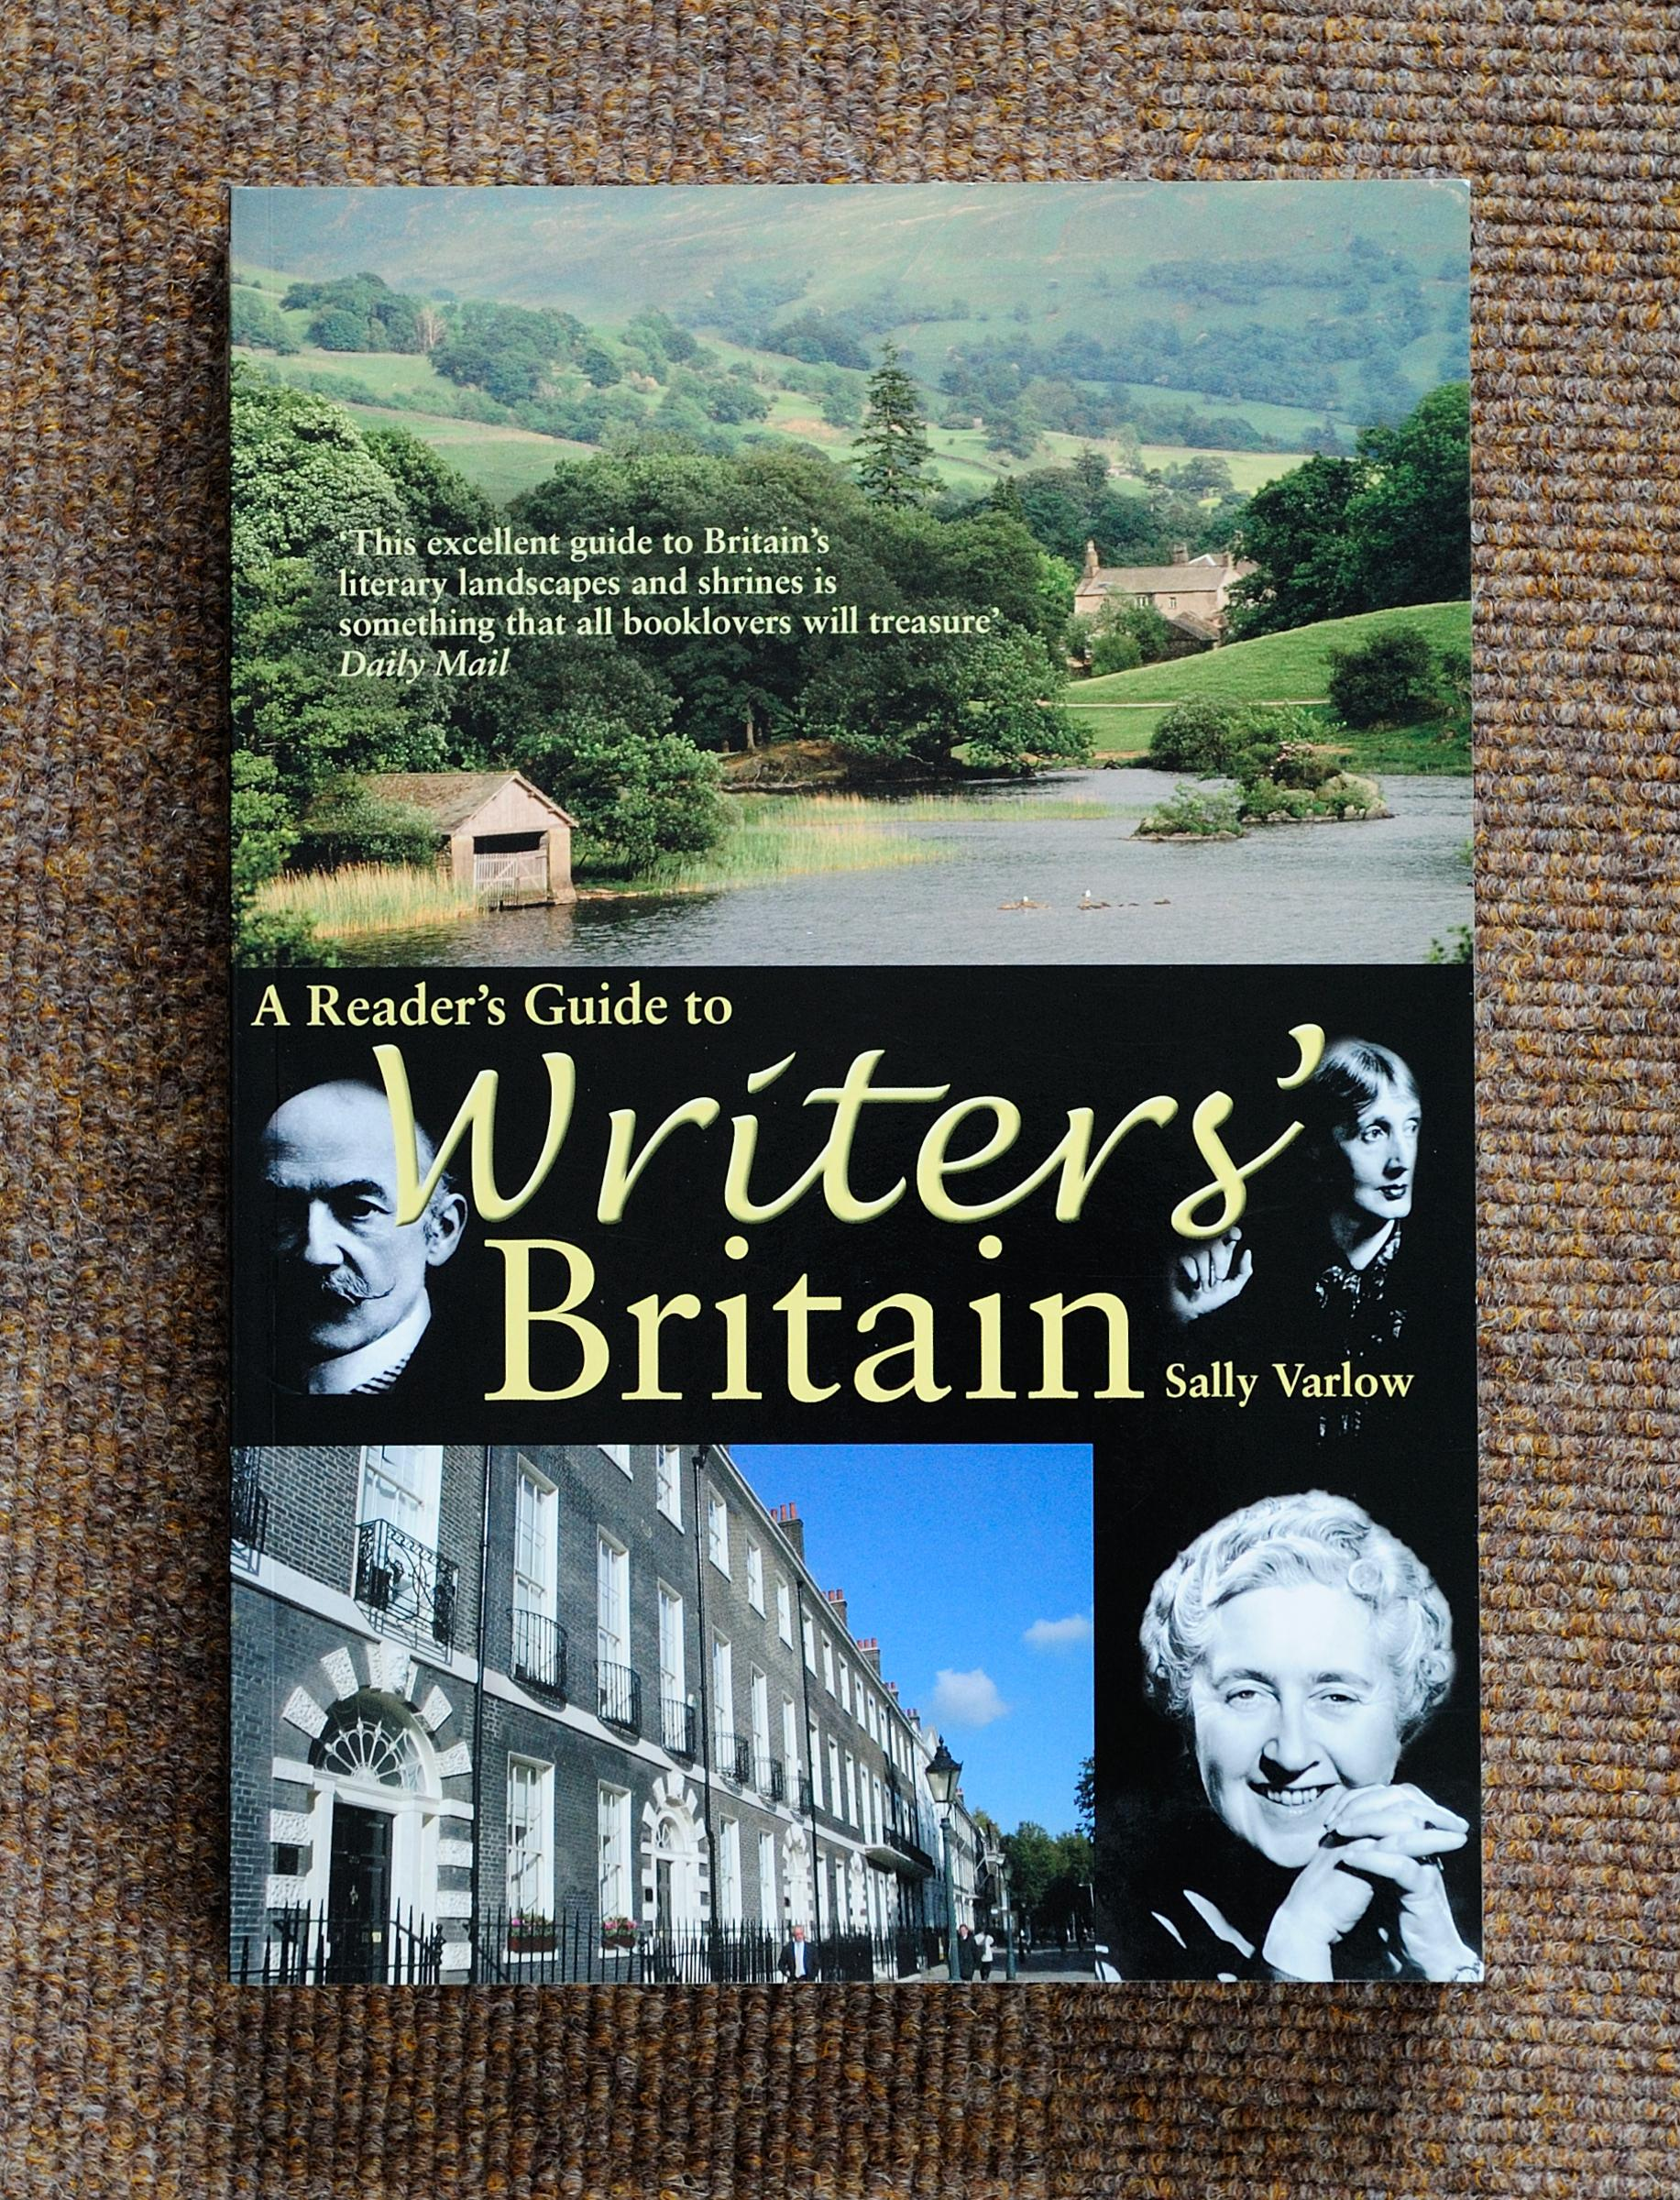 A Readers Guide to Writers' Britain